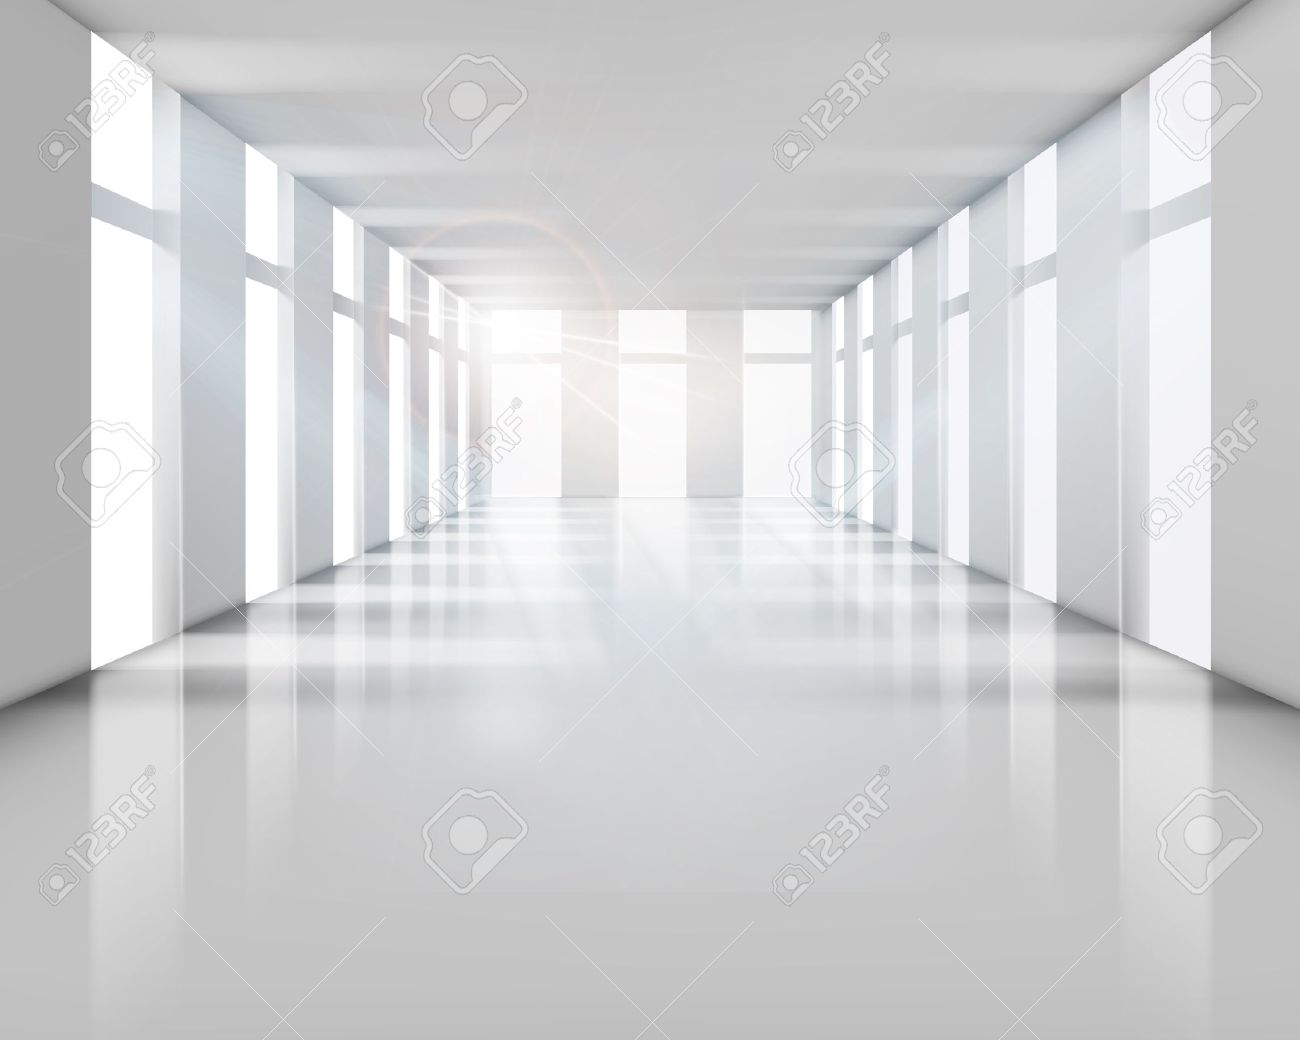 Empty living room with large windows can be as background stock - White Room Empty White Interior Vector Illustration